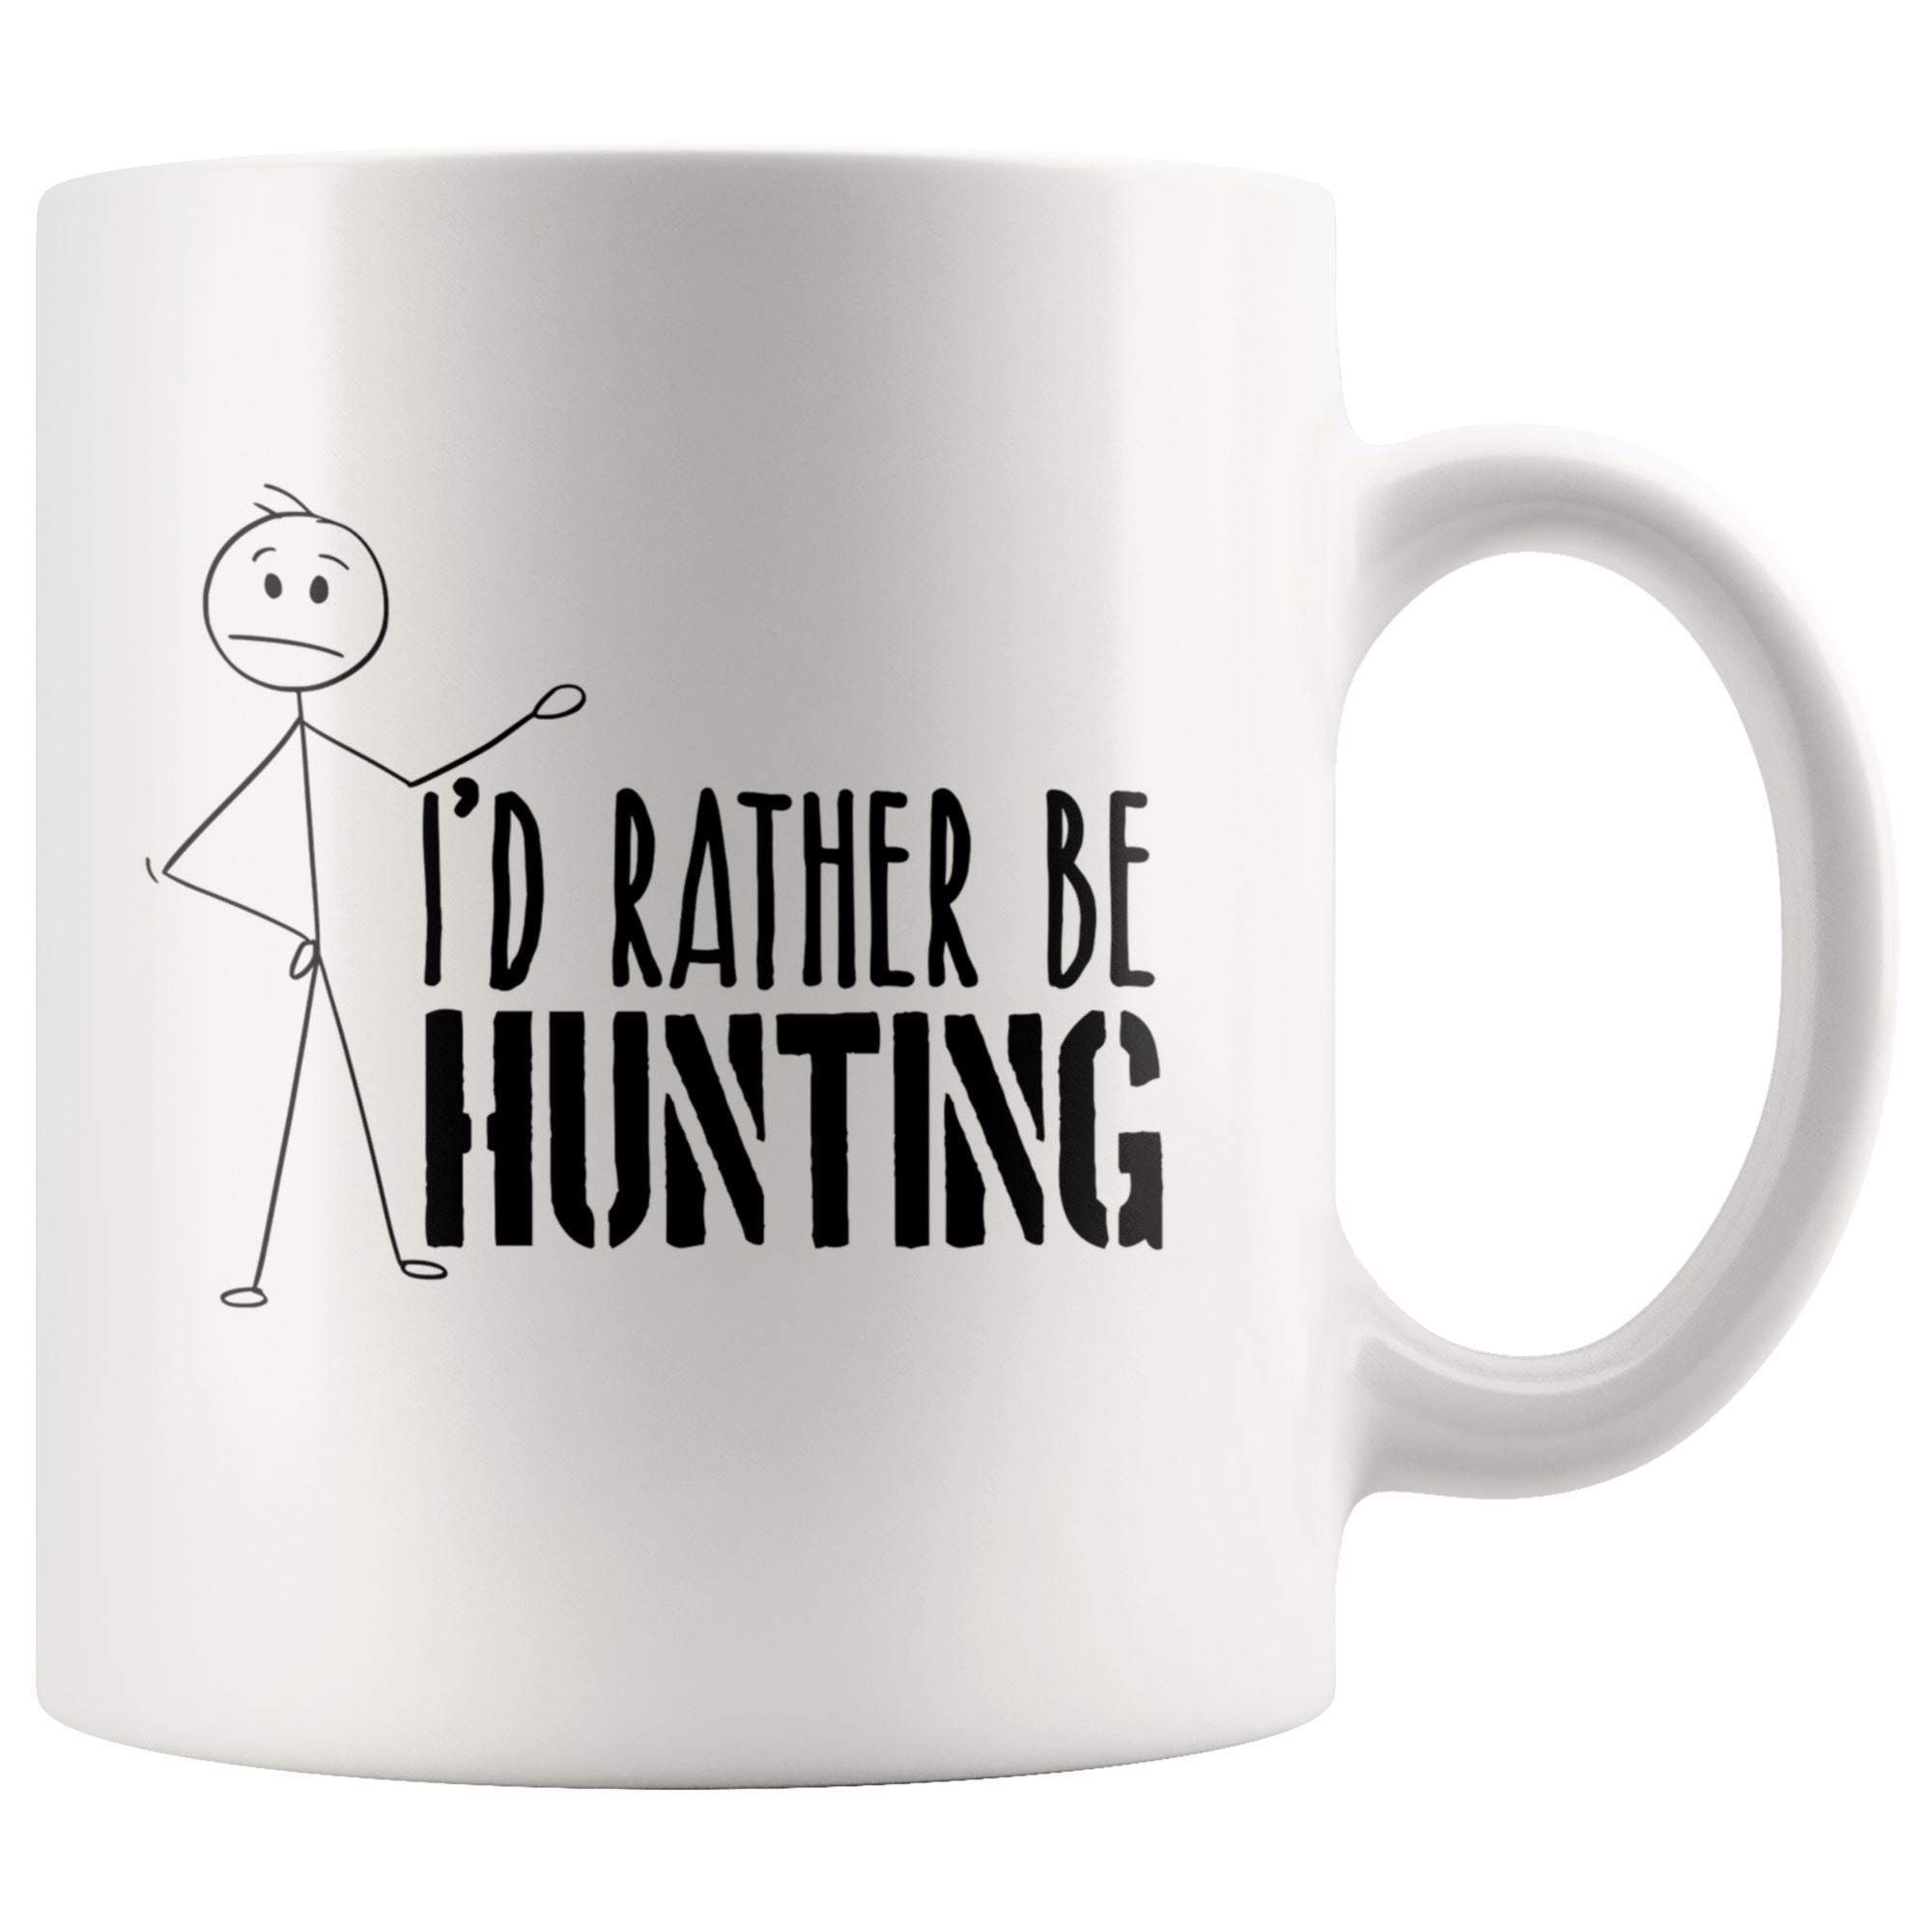 I'd Rather be Hunting Drinkware teelaunch 11oz Mug